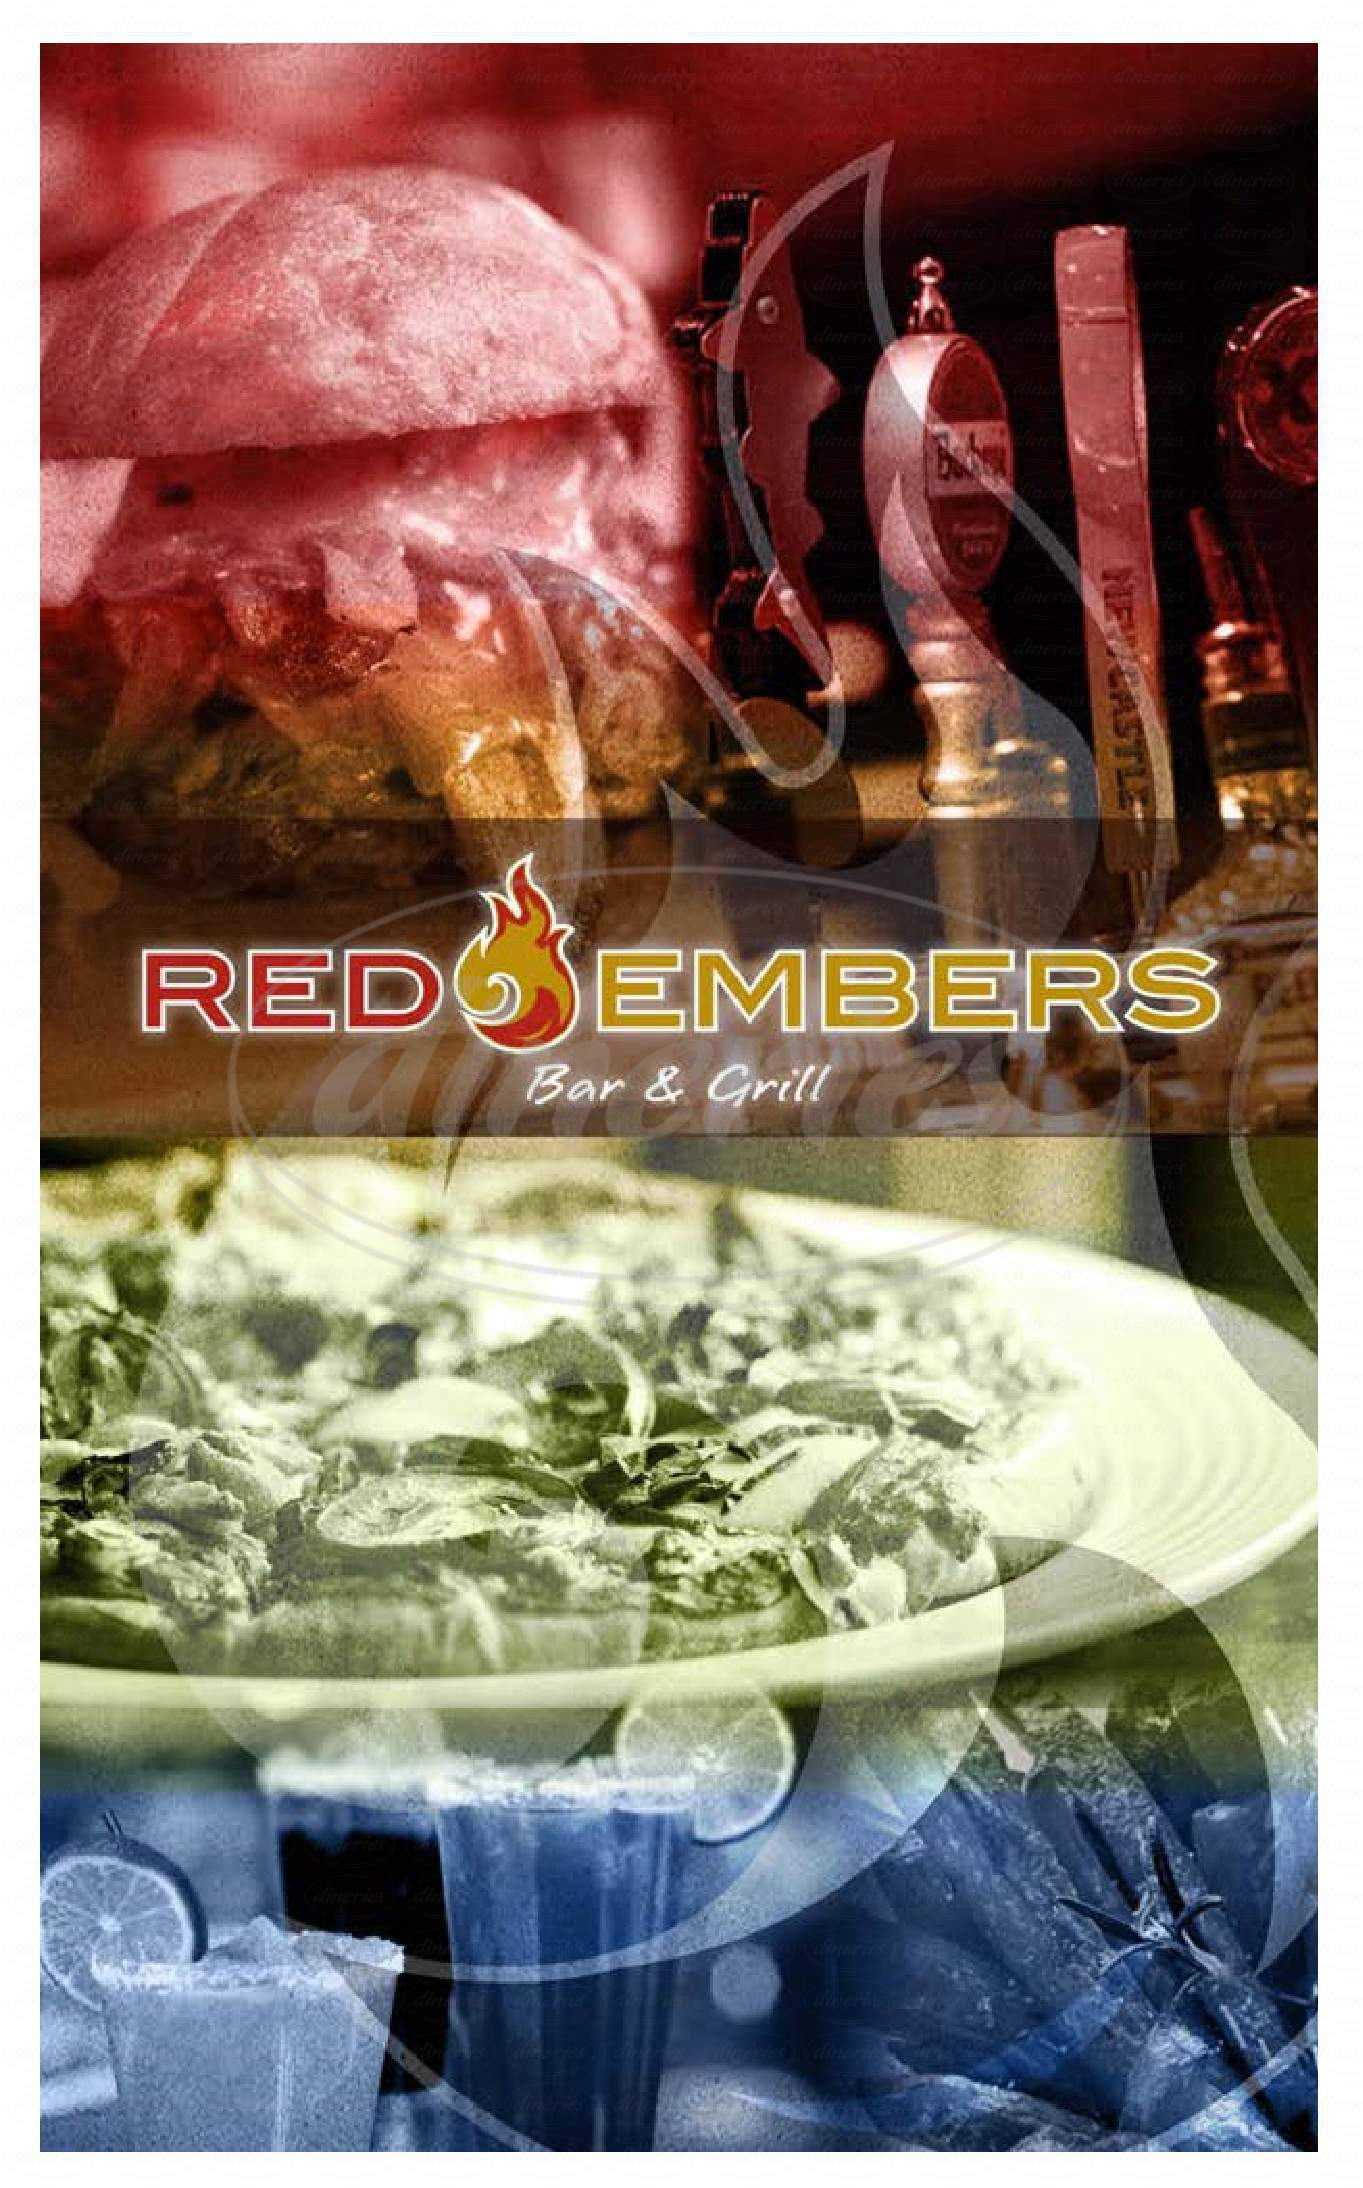 menu for Red Embers Bar & Grill